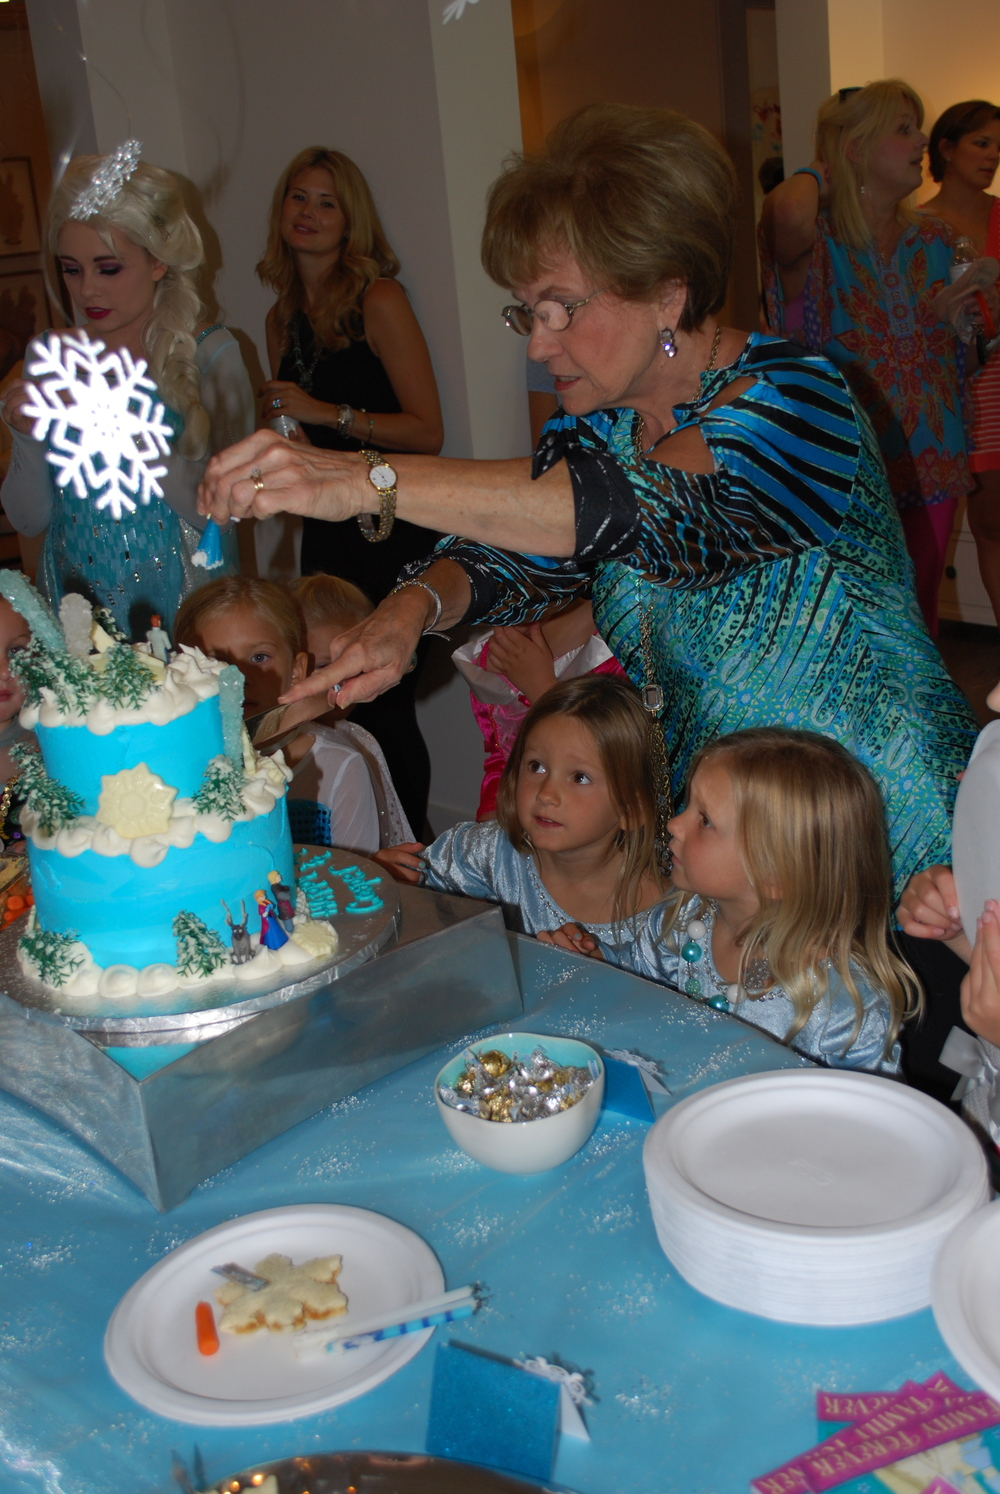 Nana cutting the cake